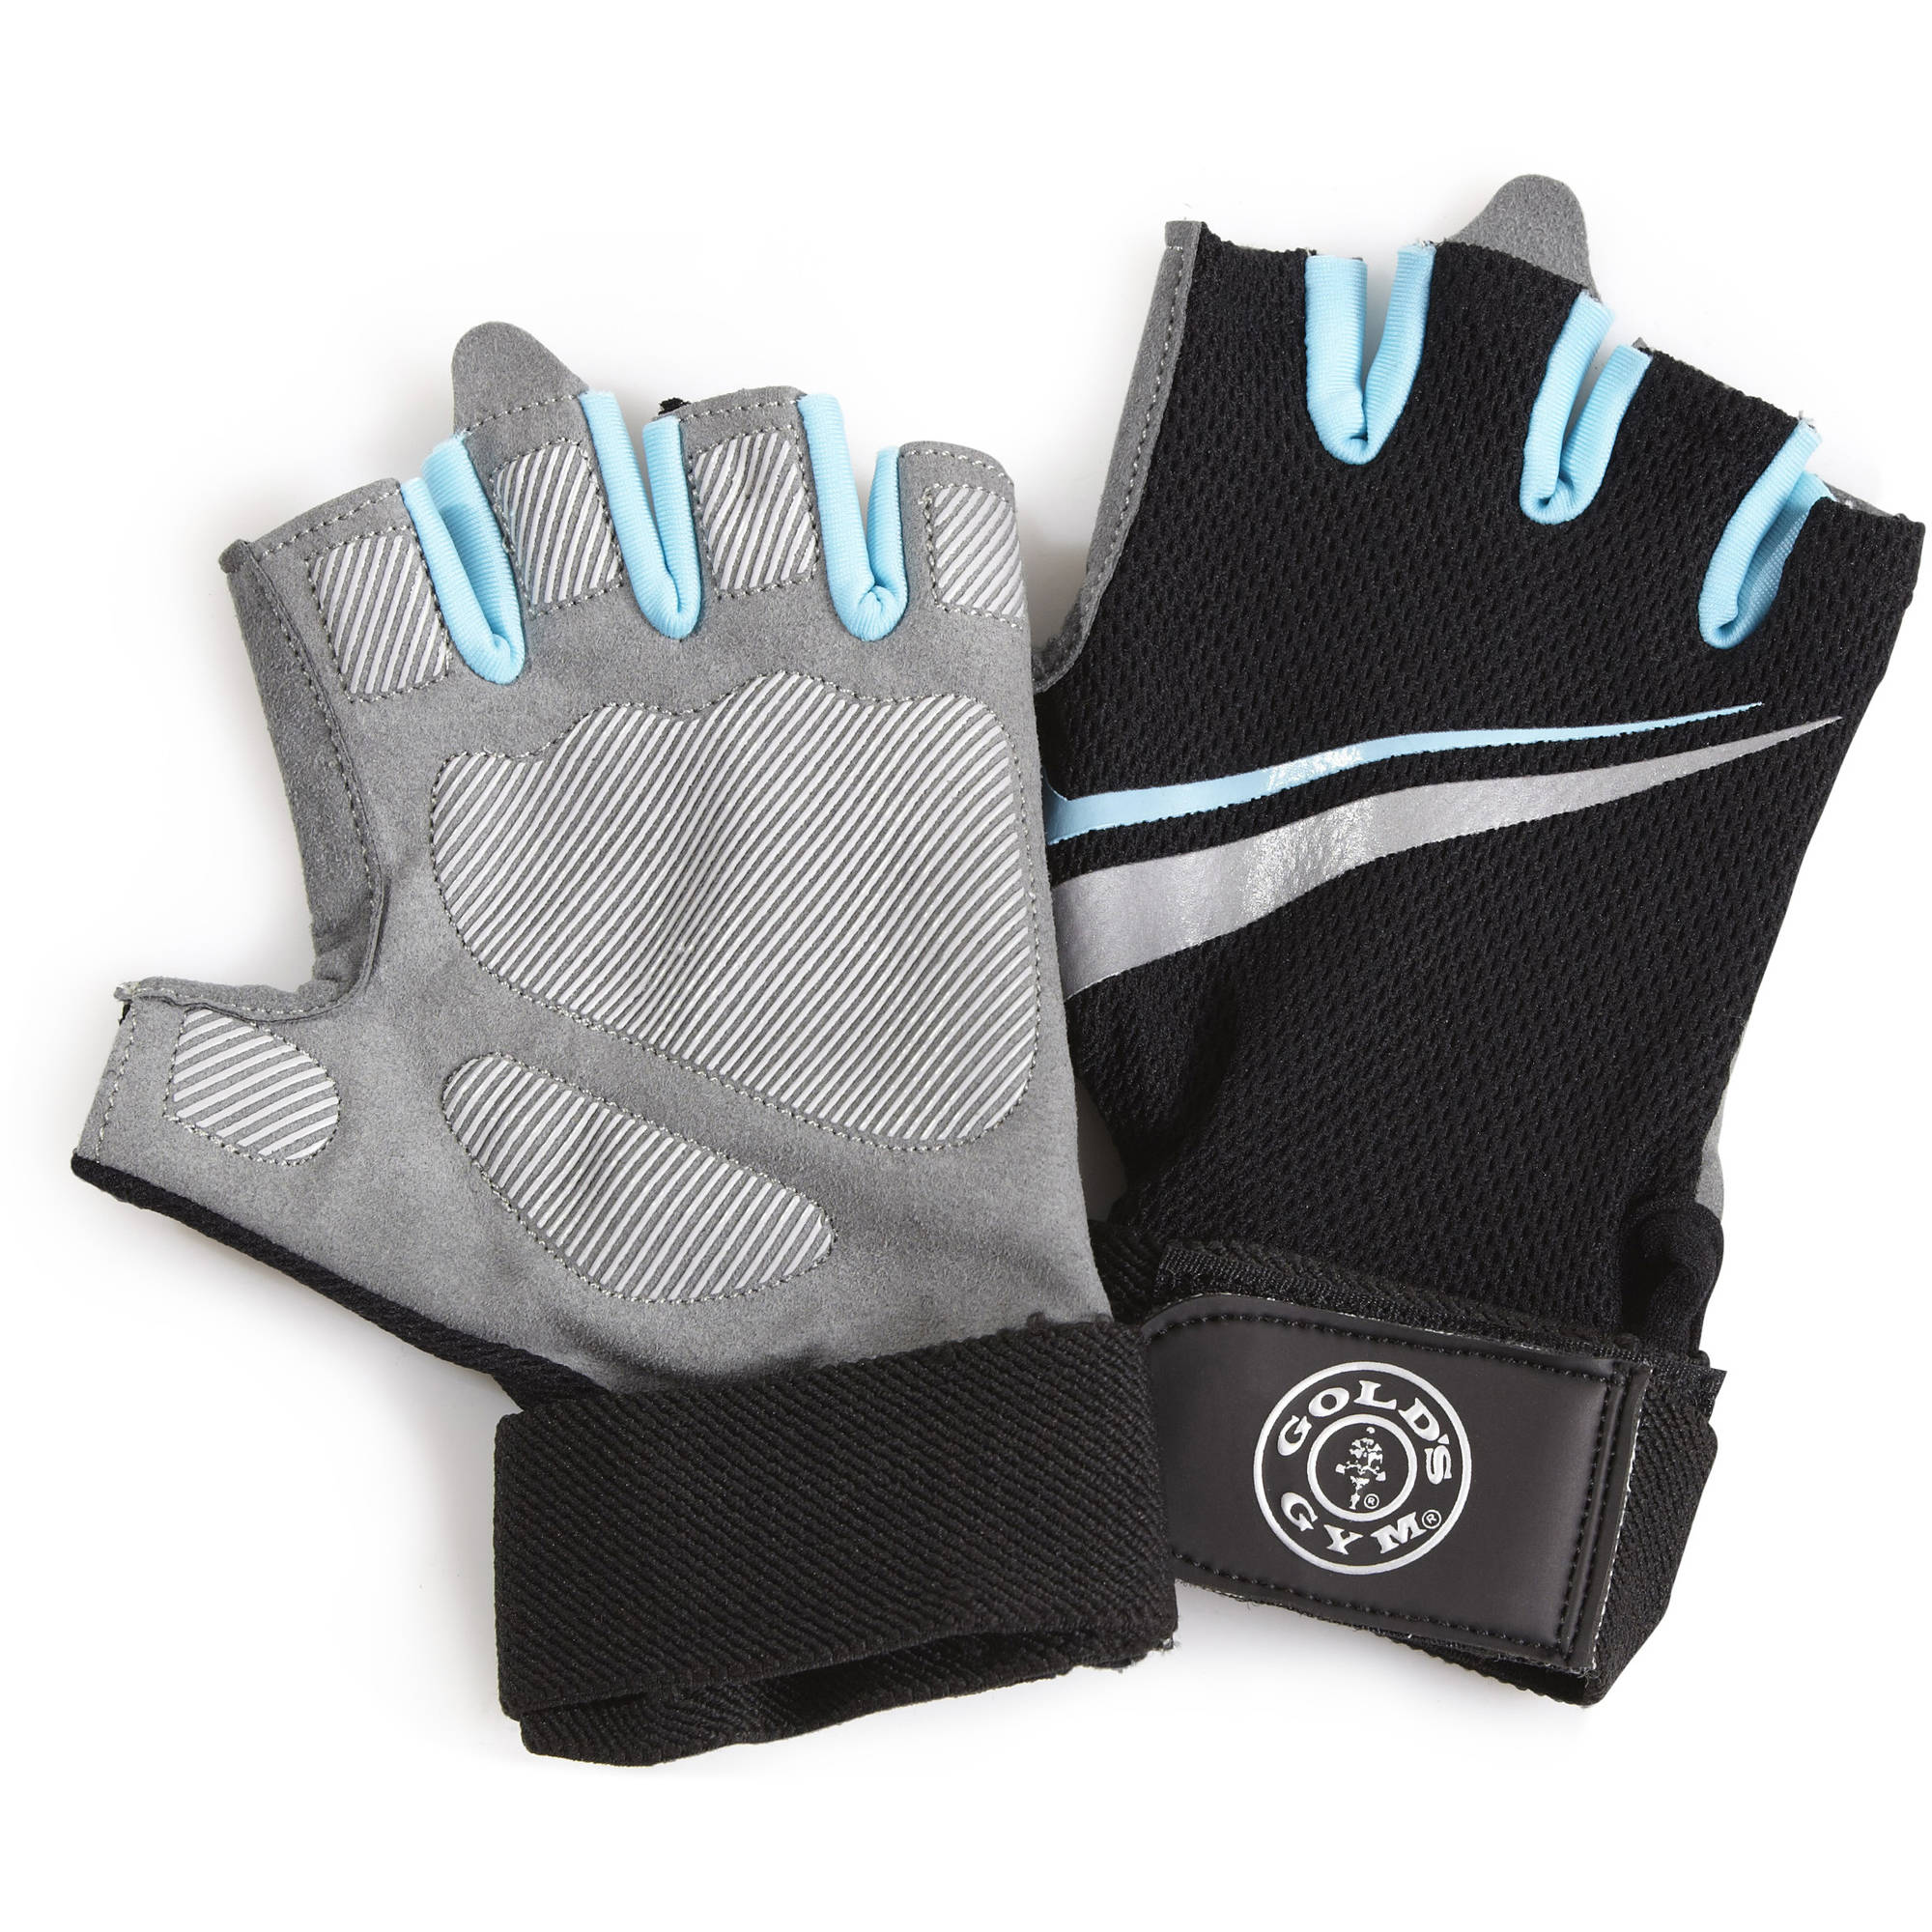 Gold's Gym Women's Tacky Gloves with Wrist Strap